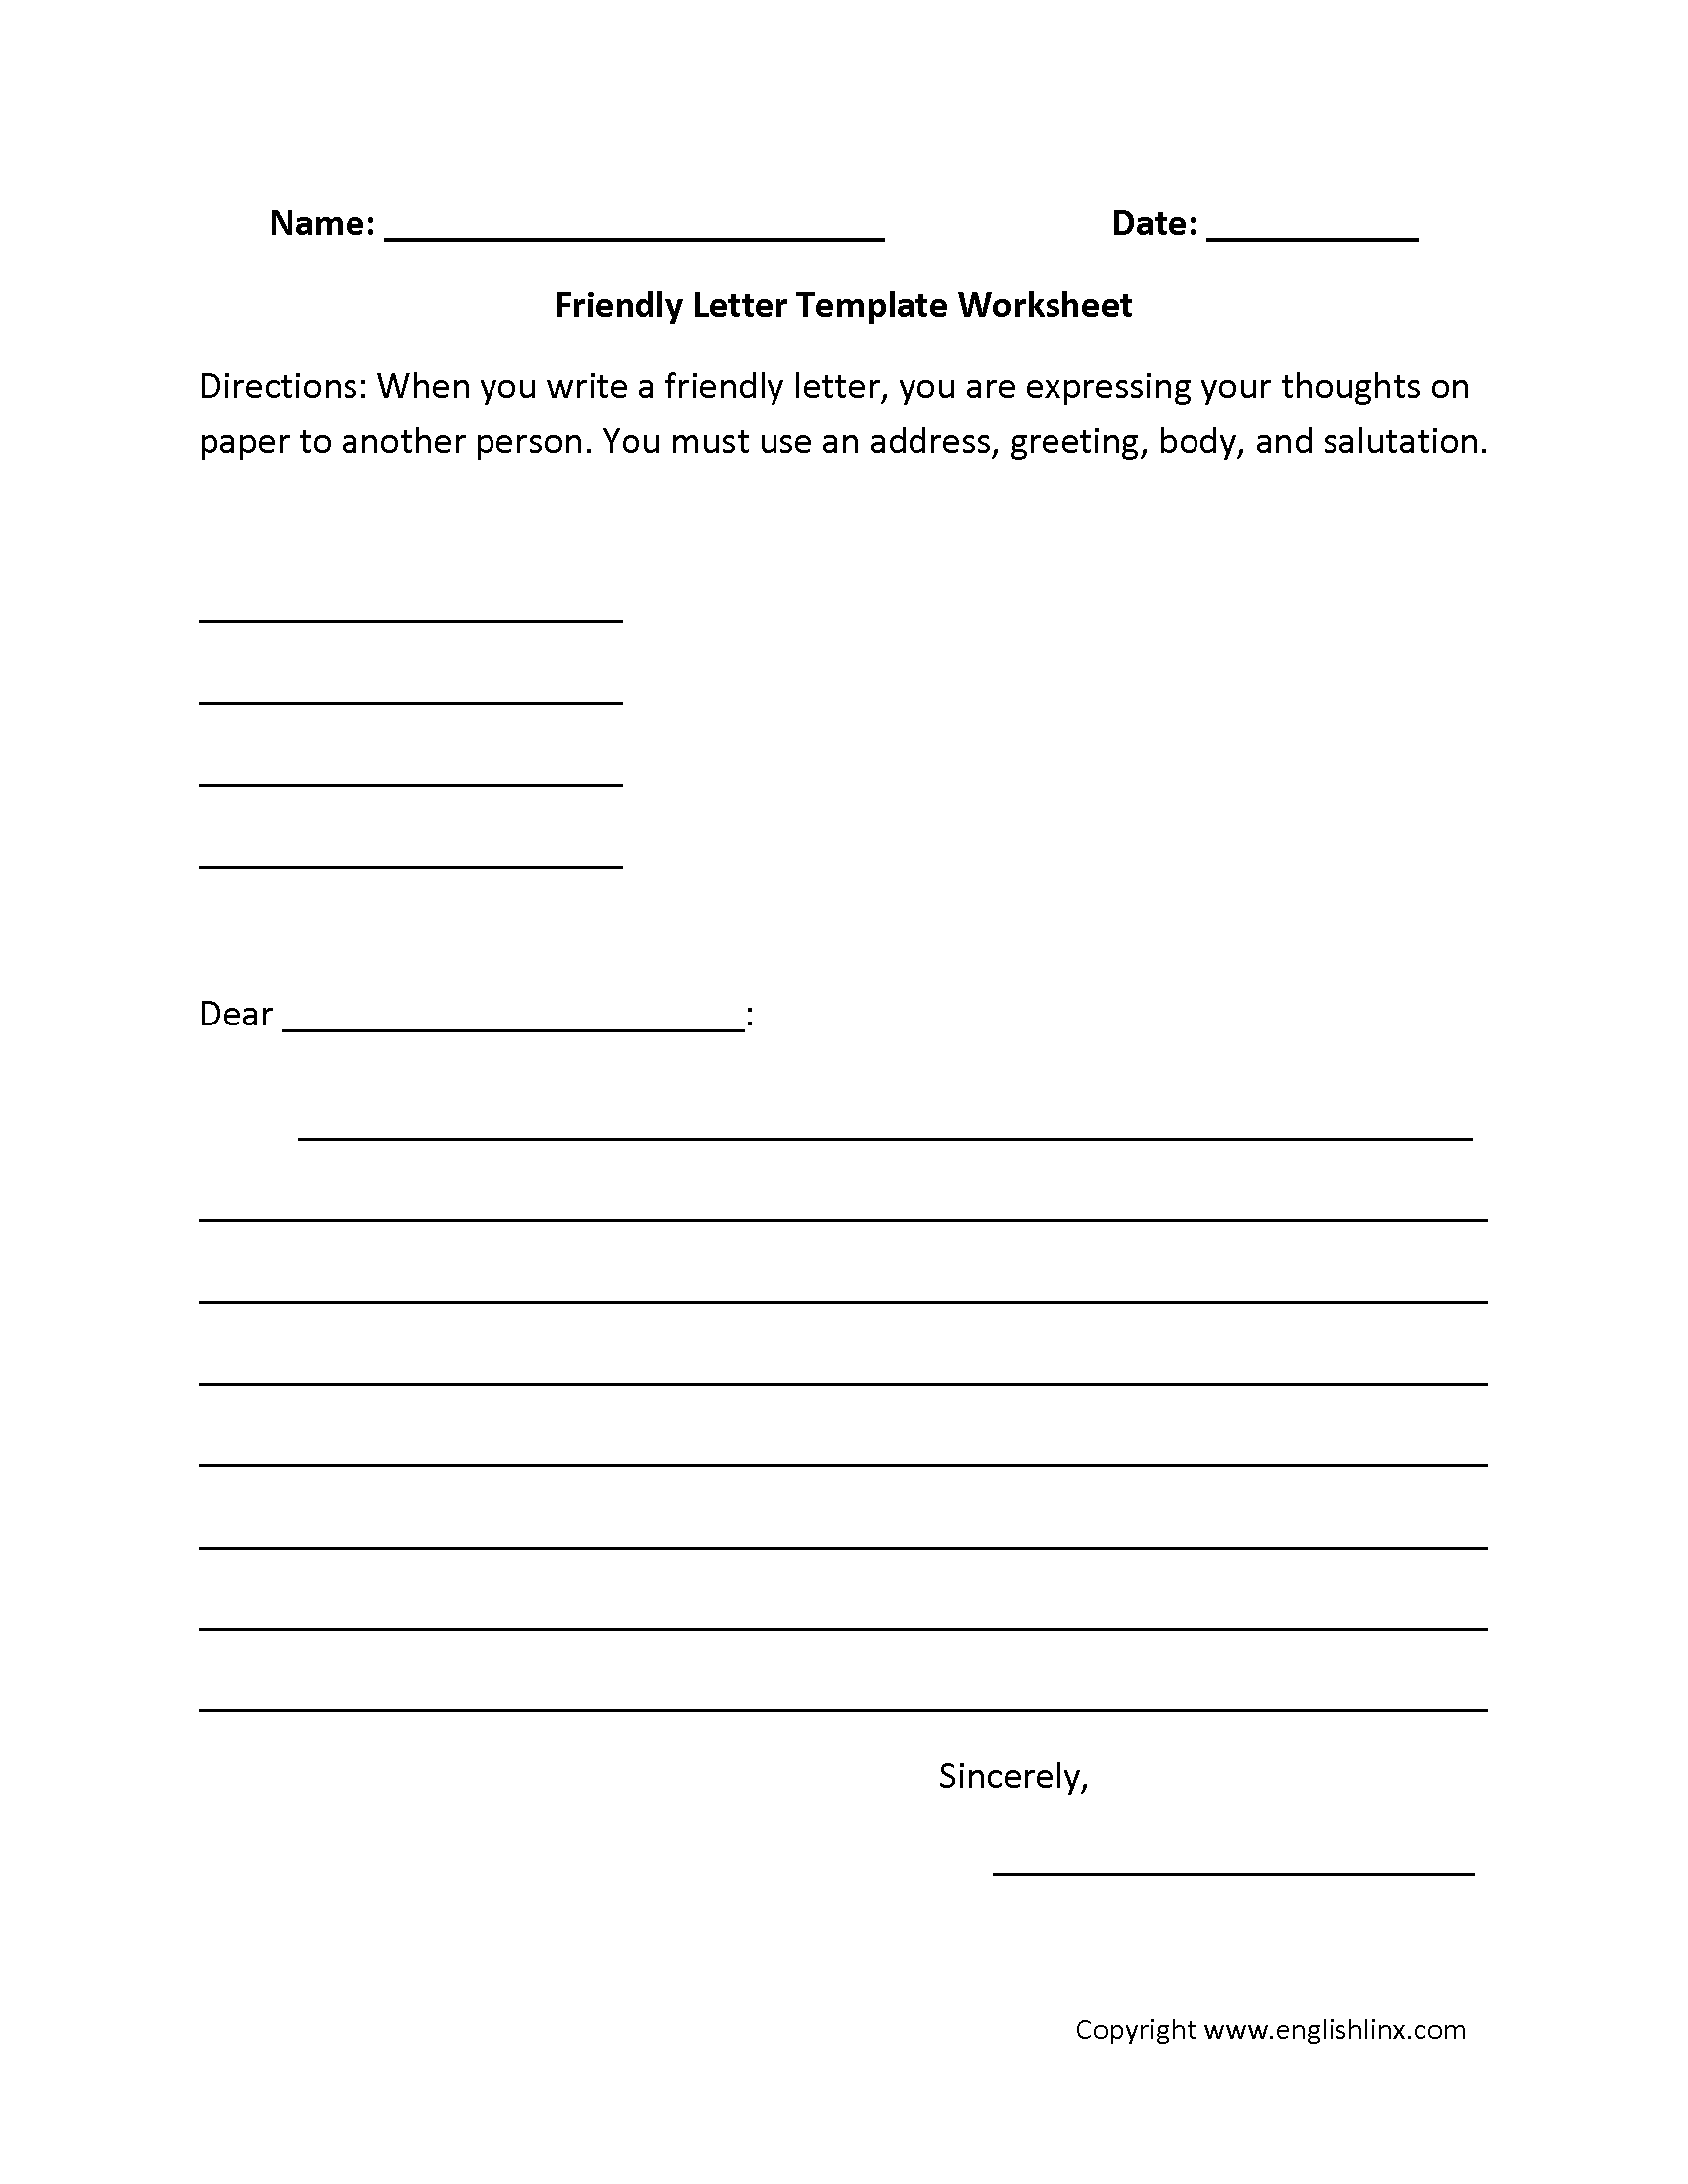 Writing worksheets letter writing worksheets friendly letter writing worksheets spiritdancerdesigns Images